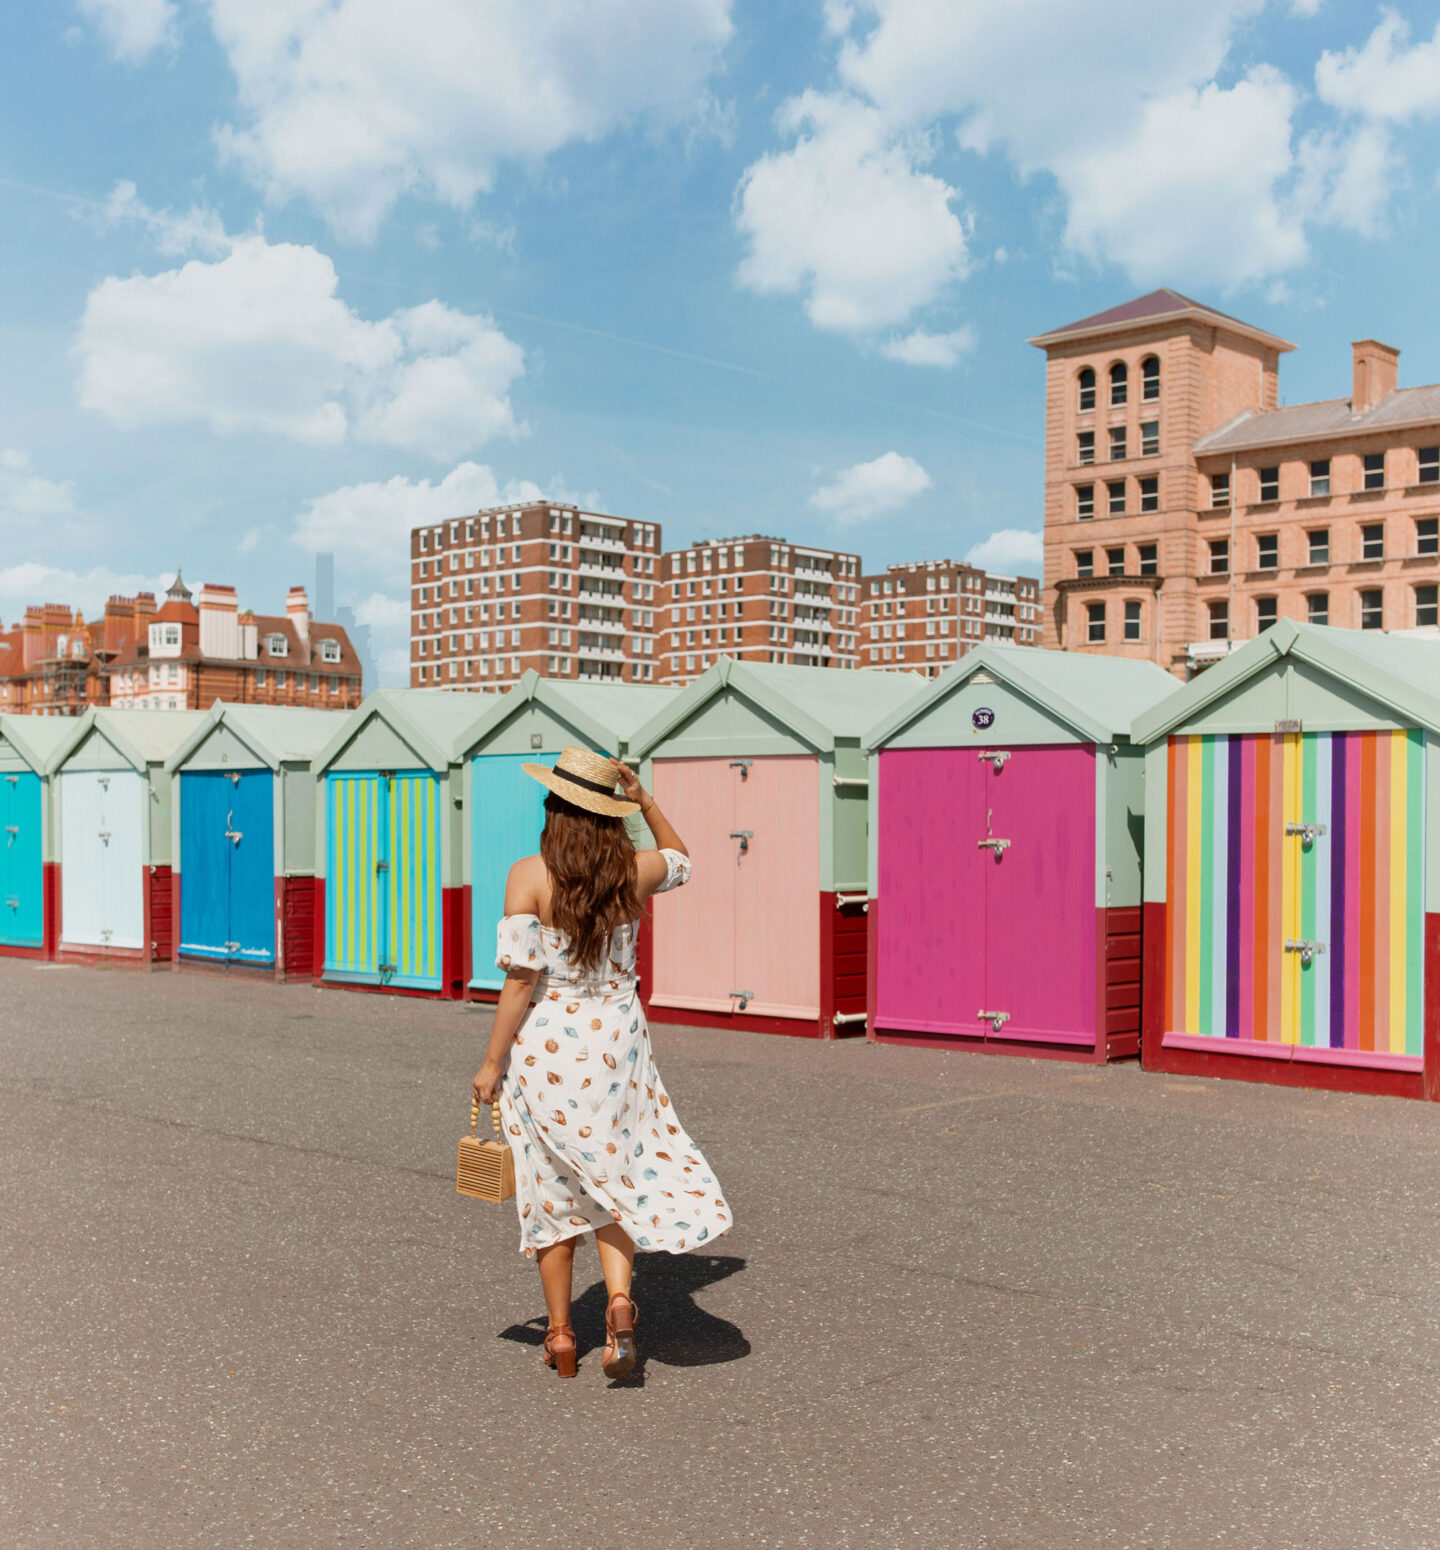 2-things-to-do-in-brighton-Bucket-list--Instagram-Story-Template--kelseyinlondon-Kelsey-Heinrichs-brighton-beach-huts